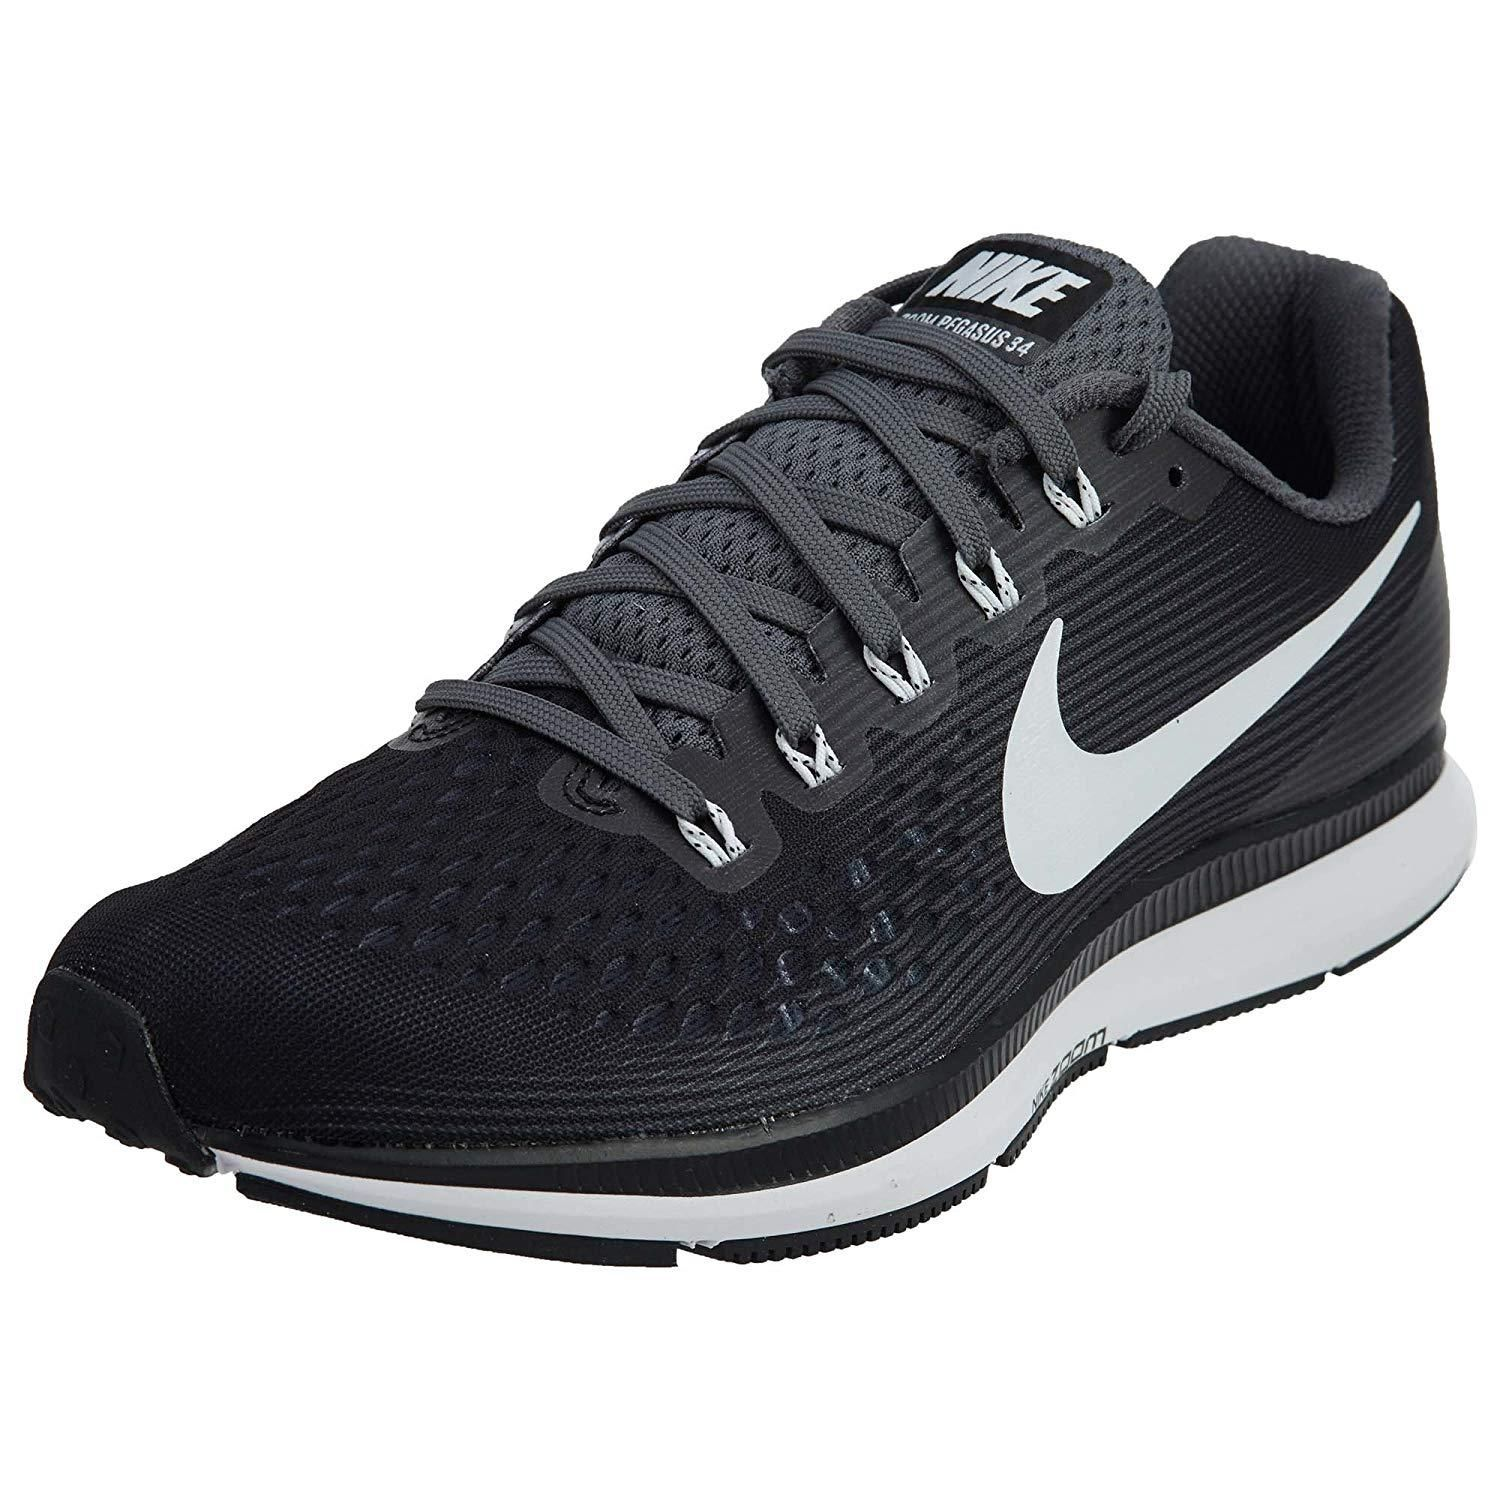 buy popular 4fbba b6bb2 Nike Air Zoom Pegasus 34 TB Turbo Running Shoe, Black/White ...